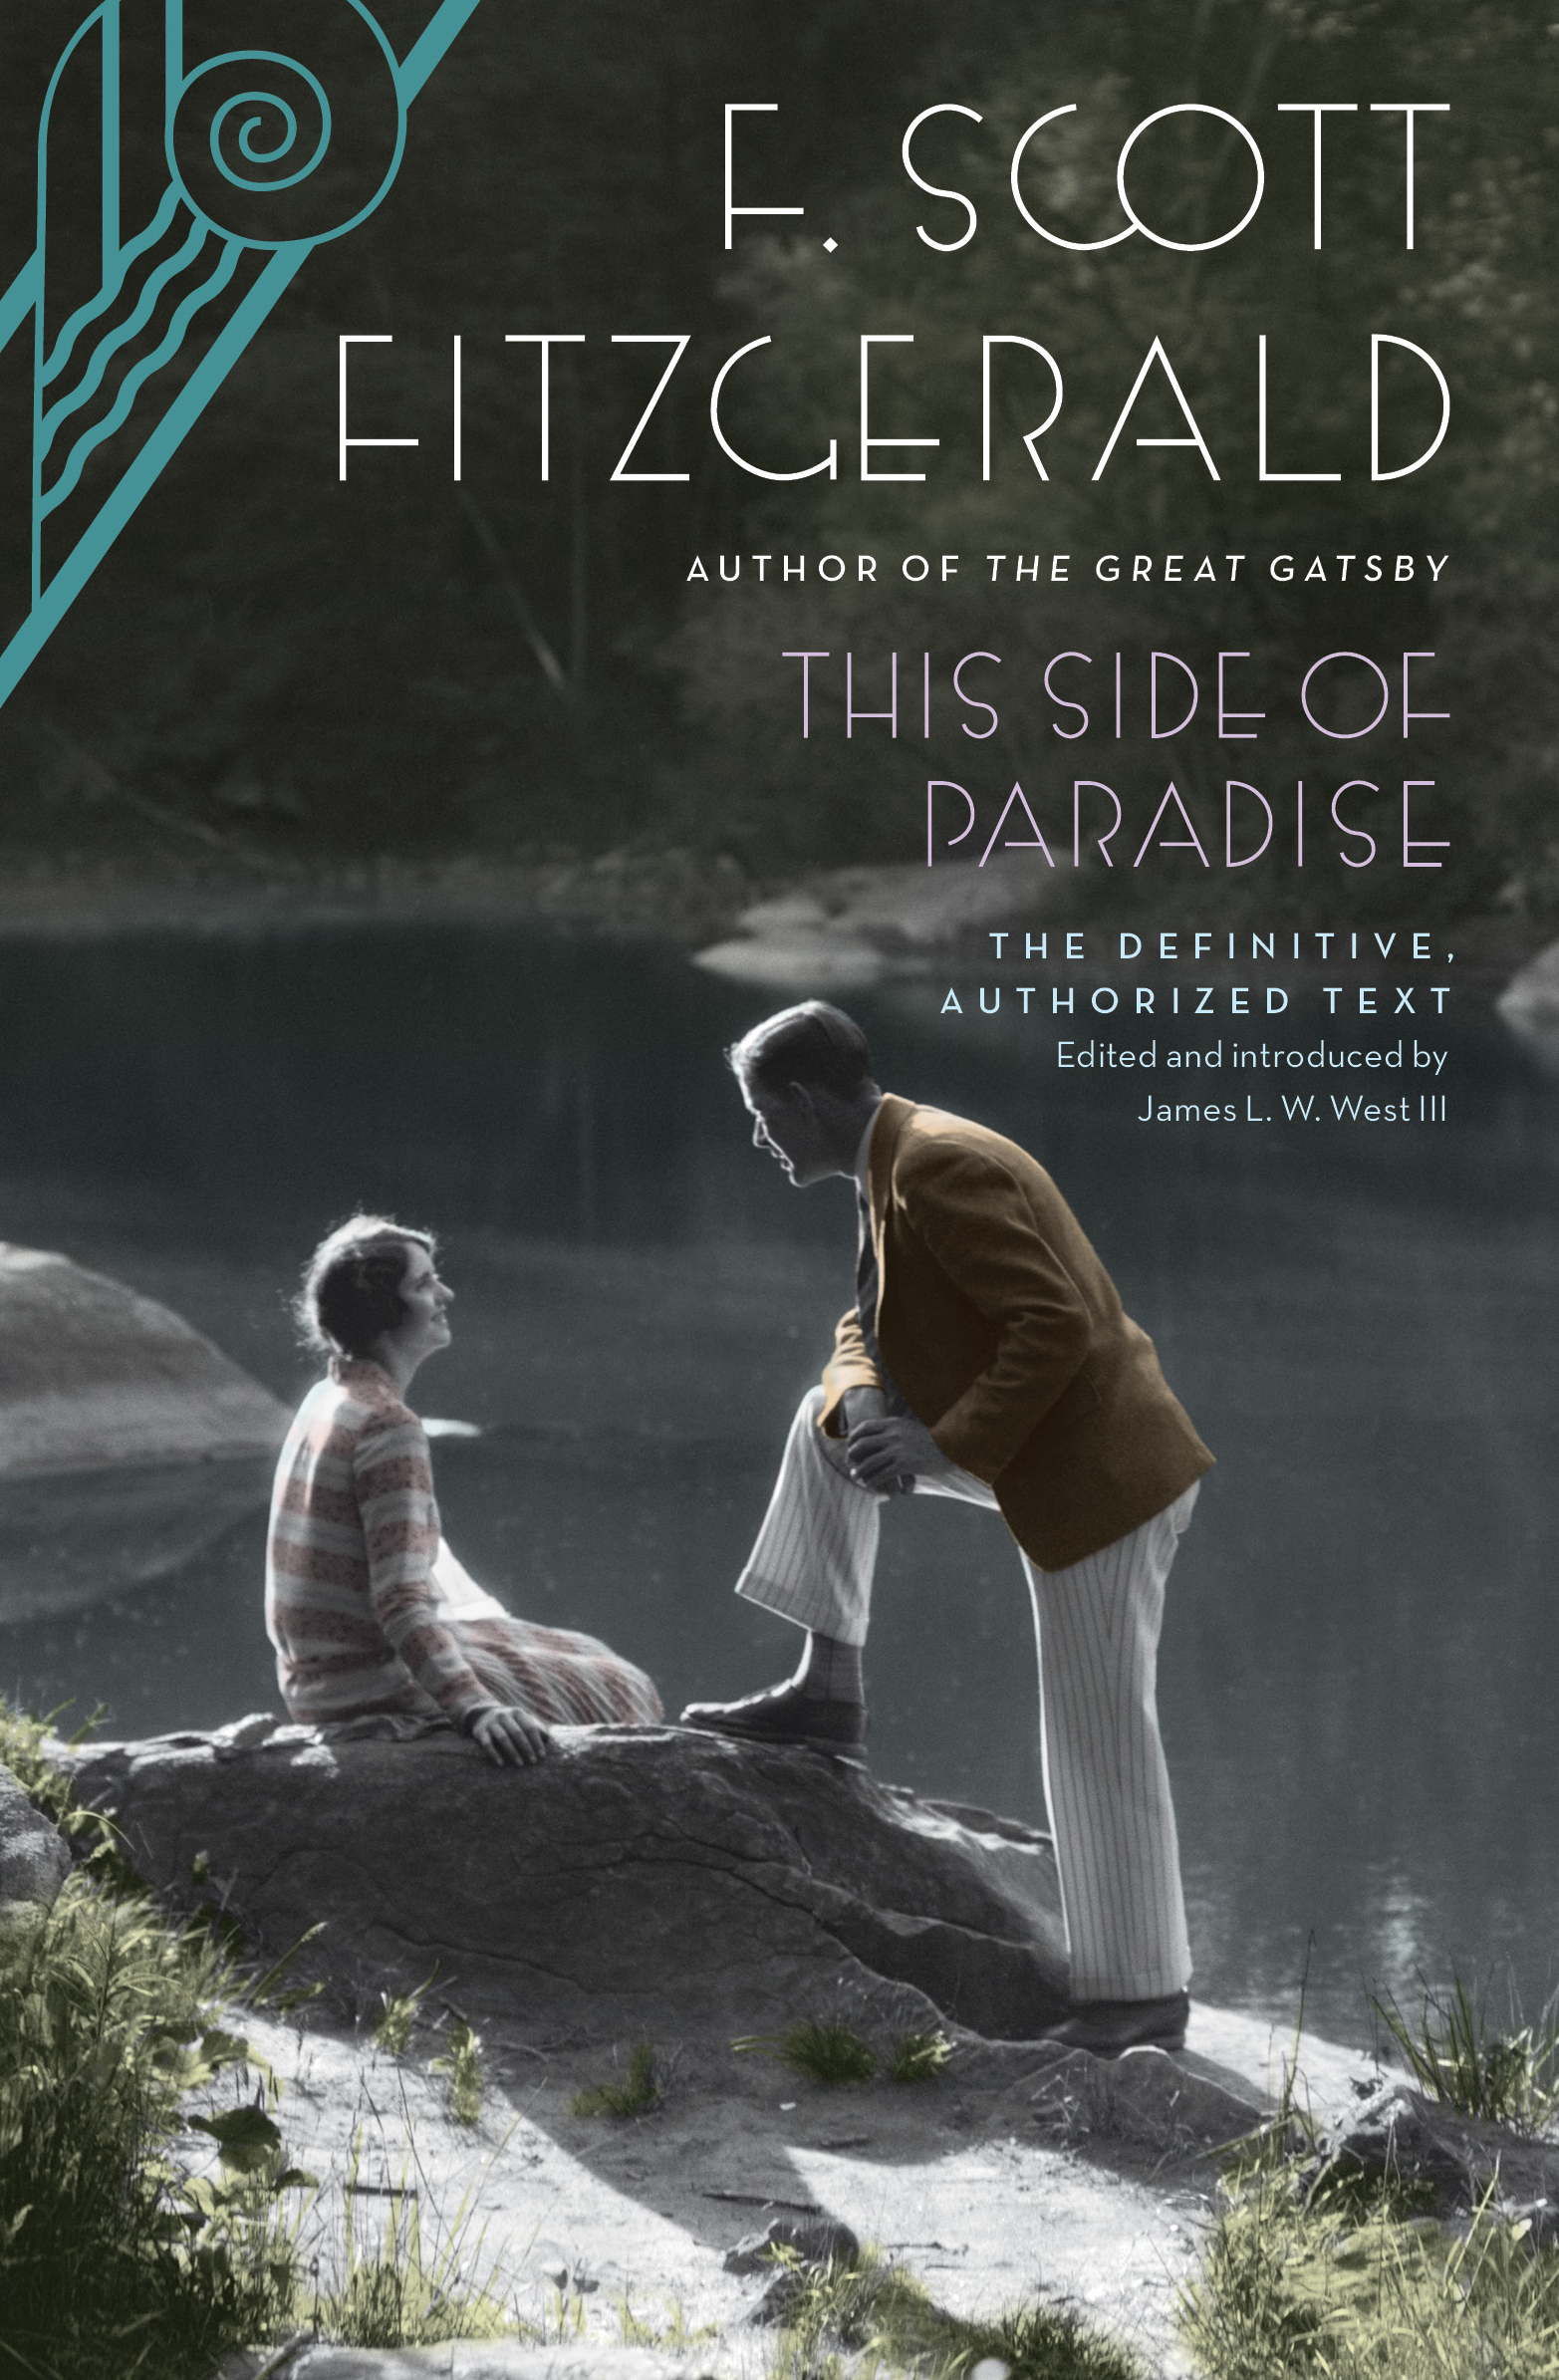 This Side of Paradise eBook by F. Scott Fitzgerald   Official Publisher Page   Simon & Schuster